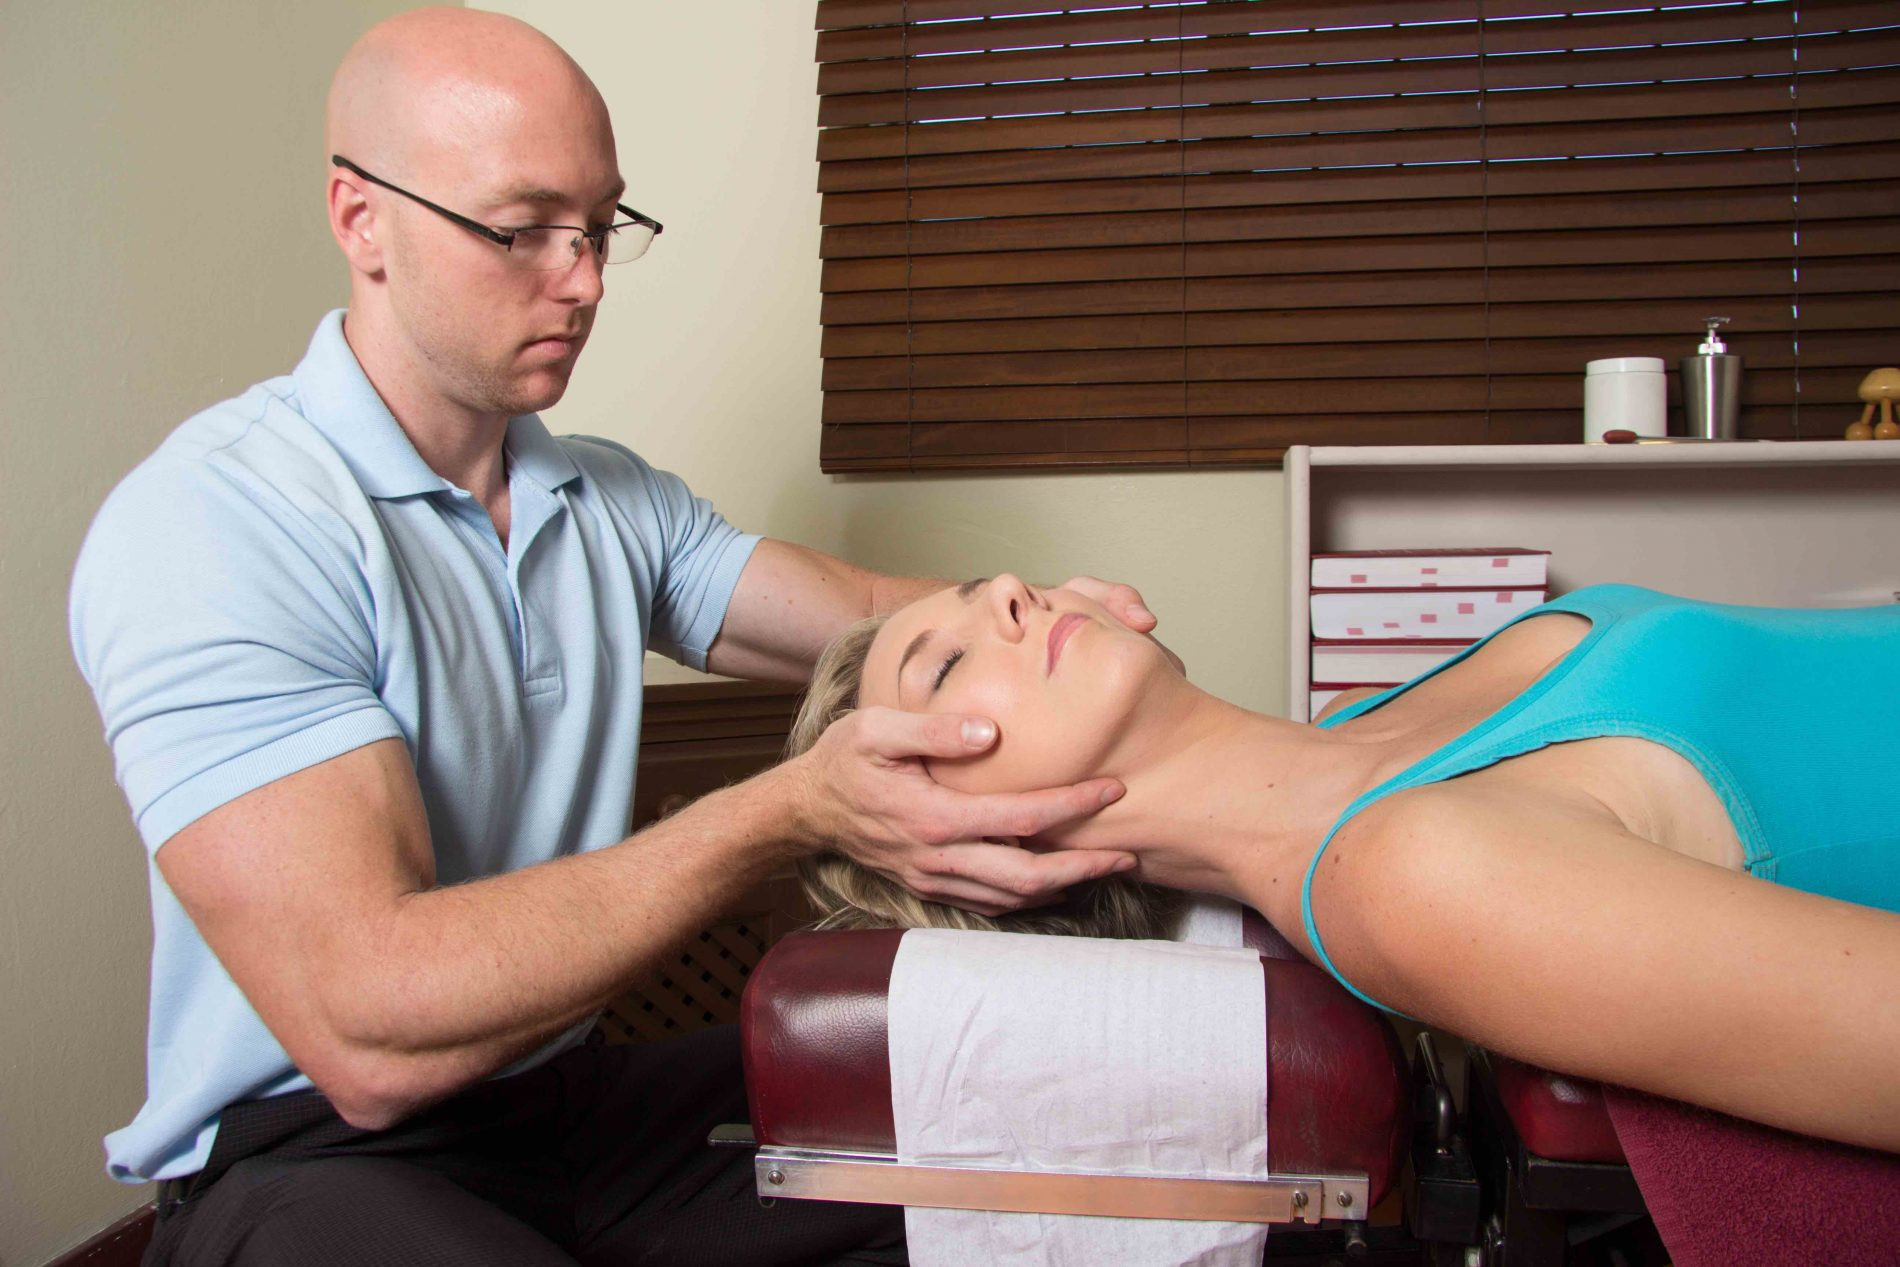 Cracking open the Myths of Chiropractic